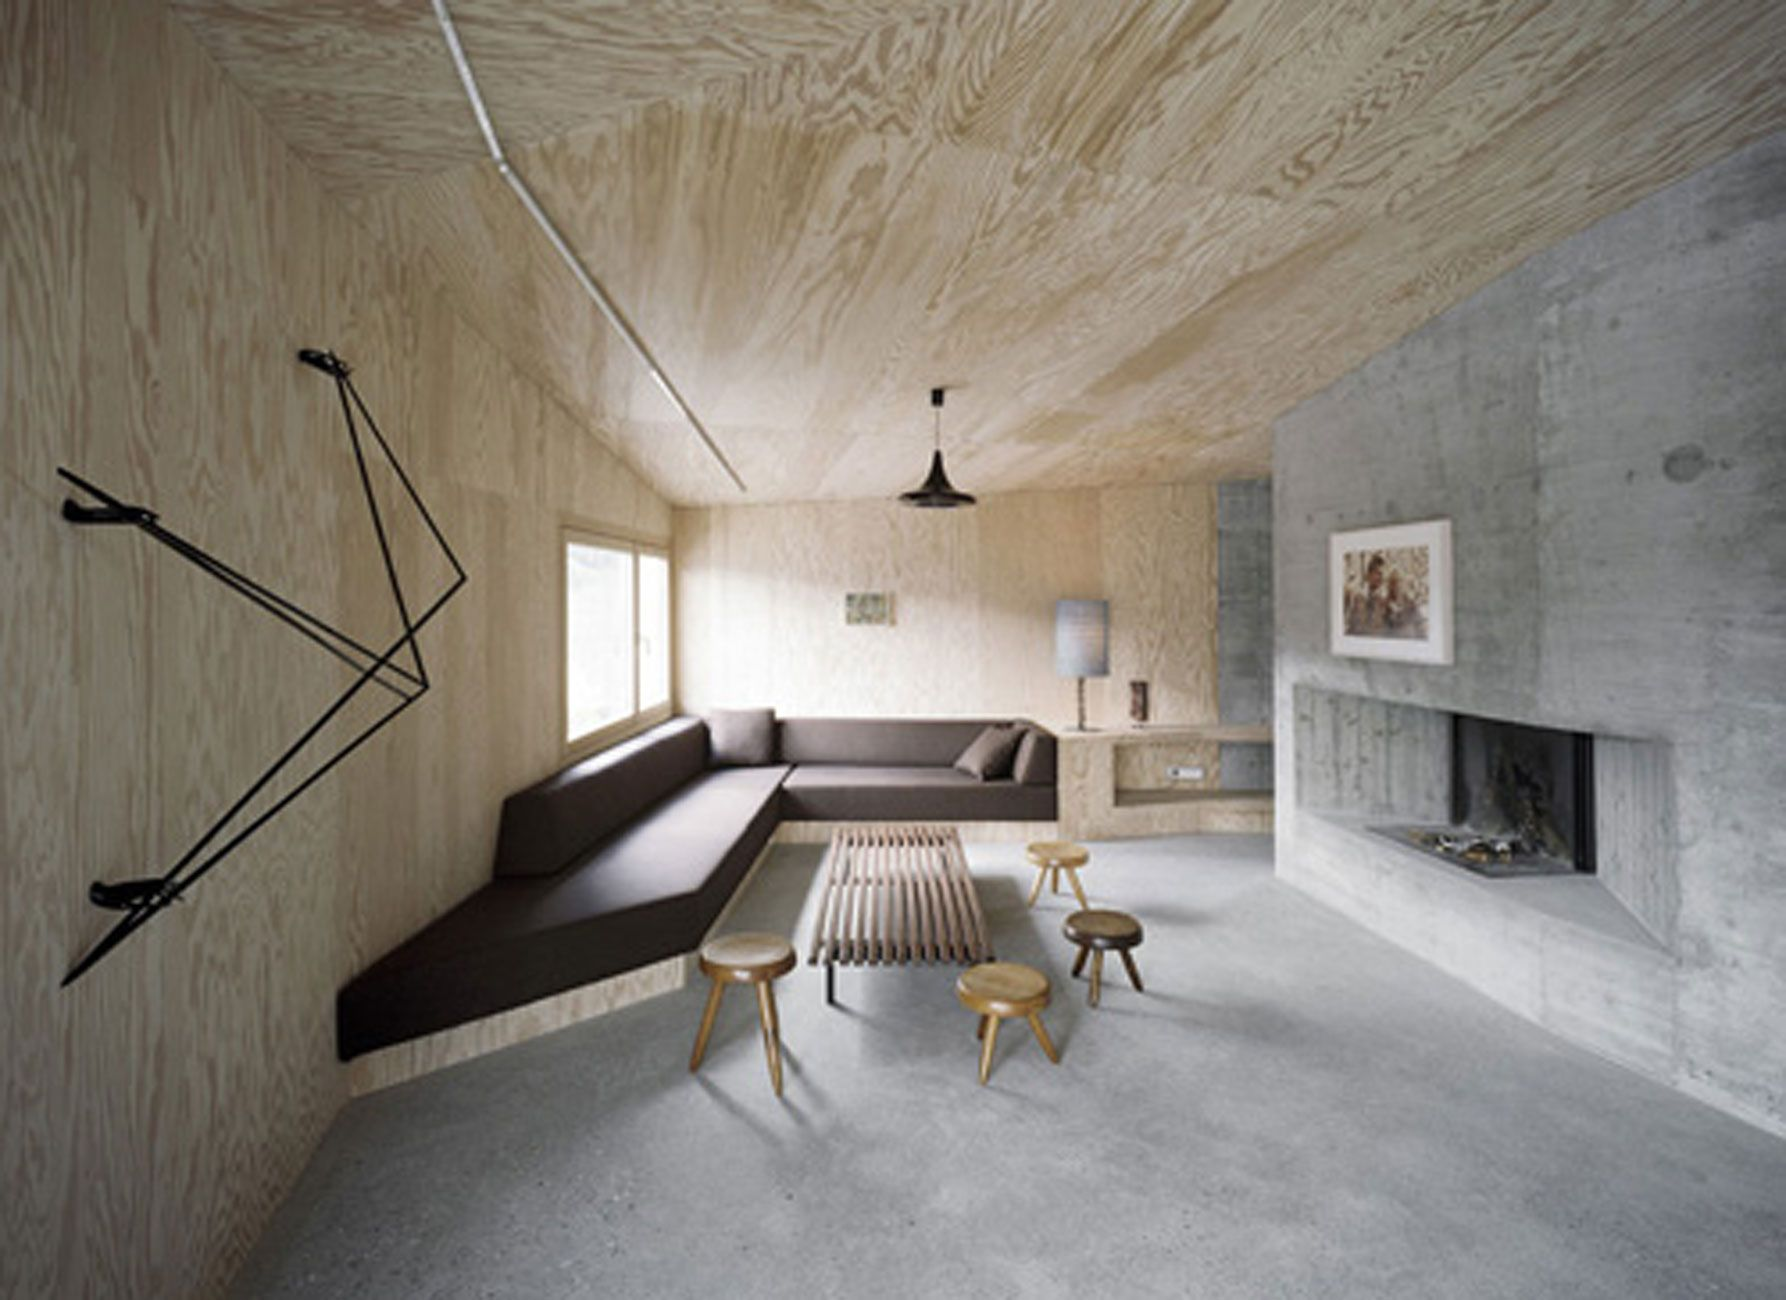 Solid concrete house architecture and minimalist interior for Minimalisme architecture